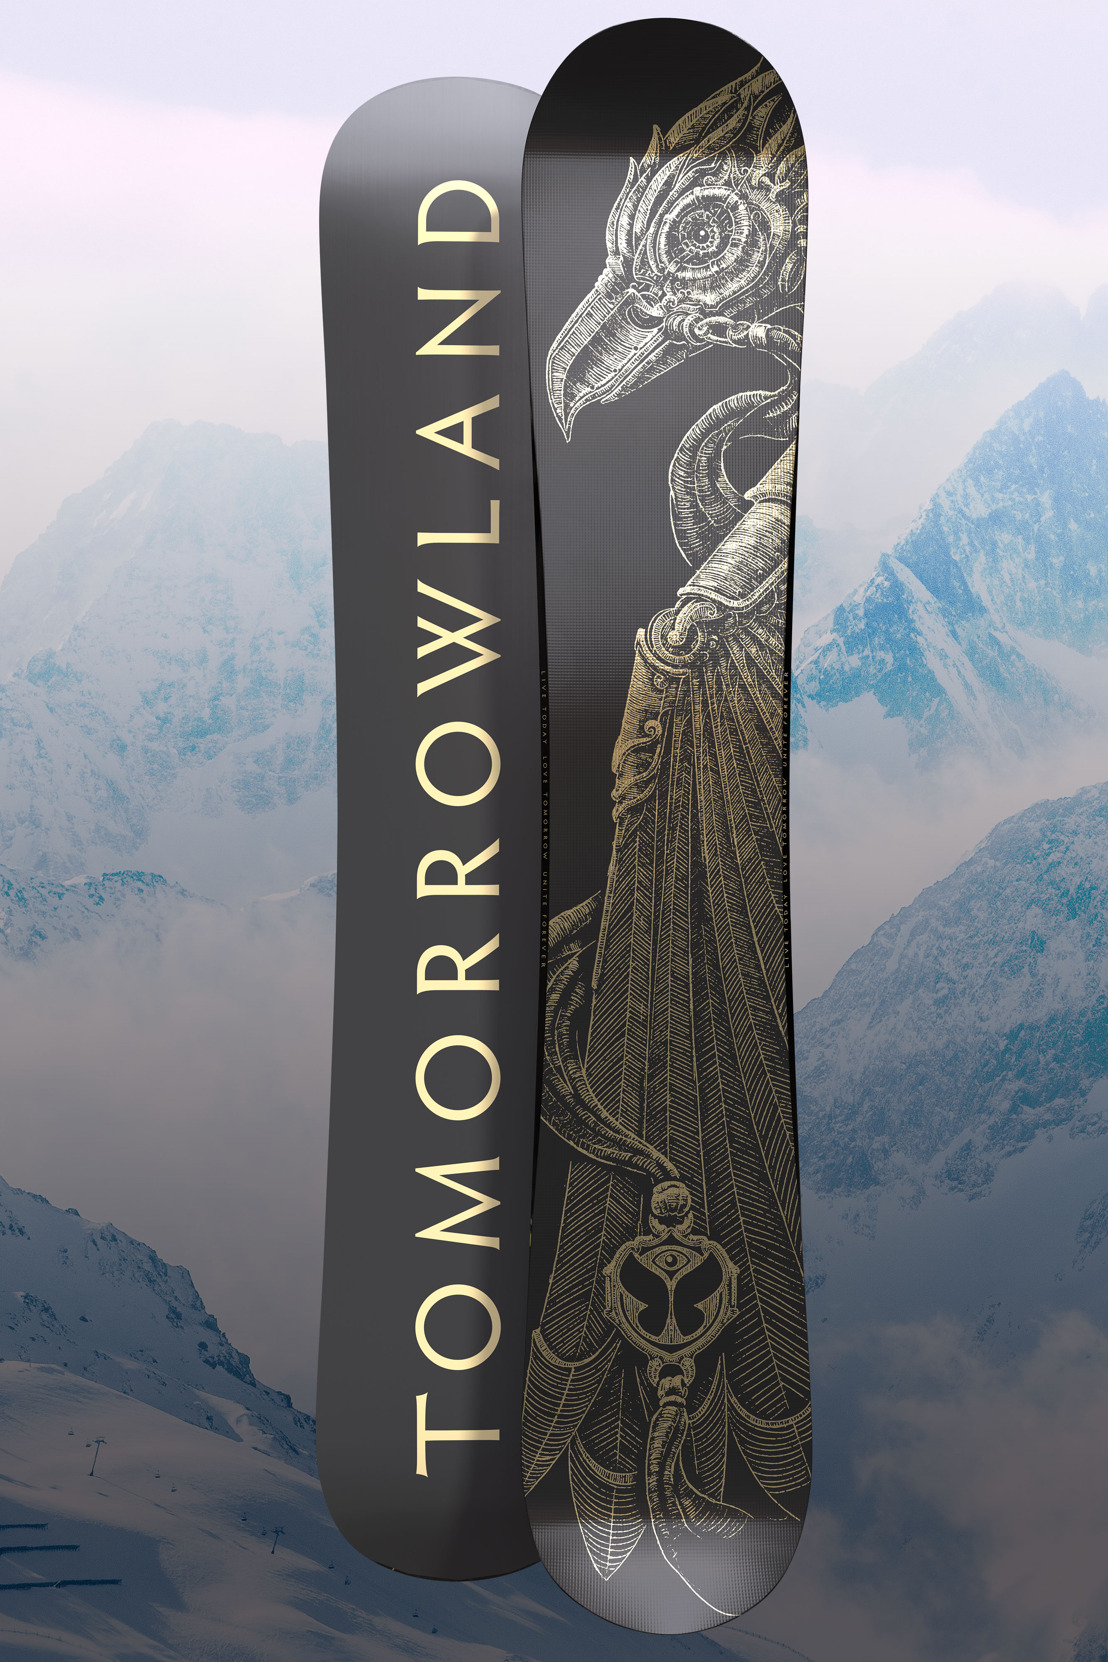 Tomorrowland unveils limited edition ski set and snowboards